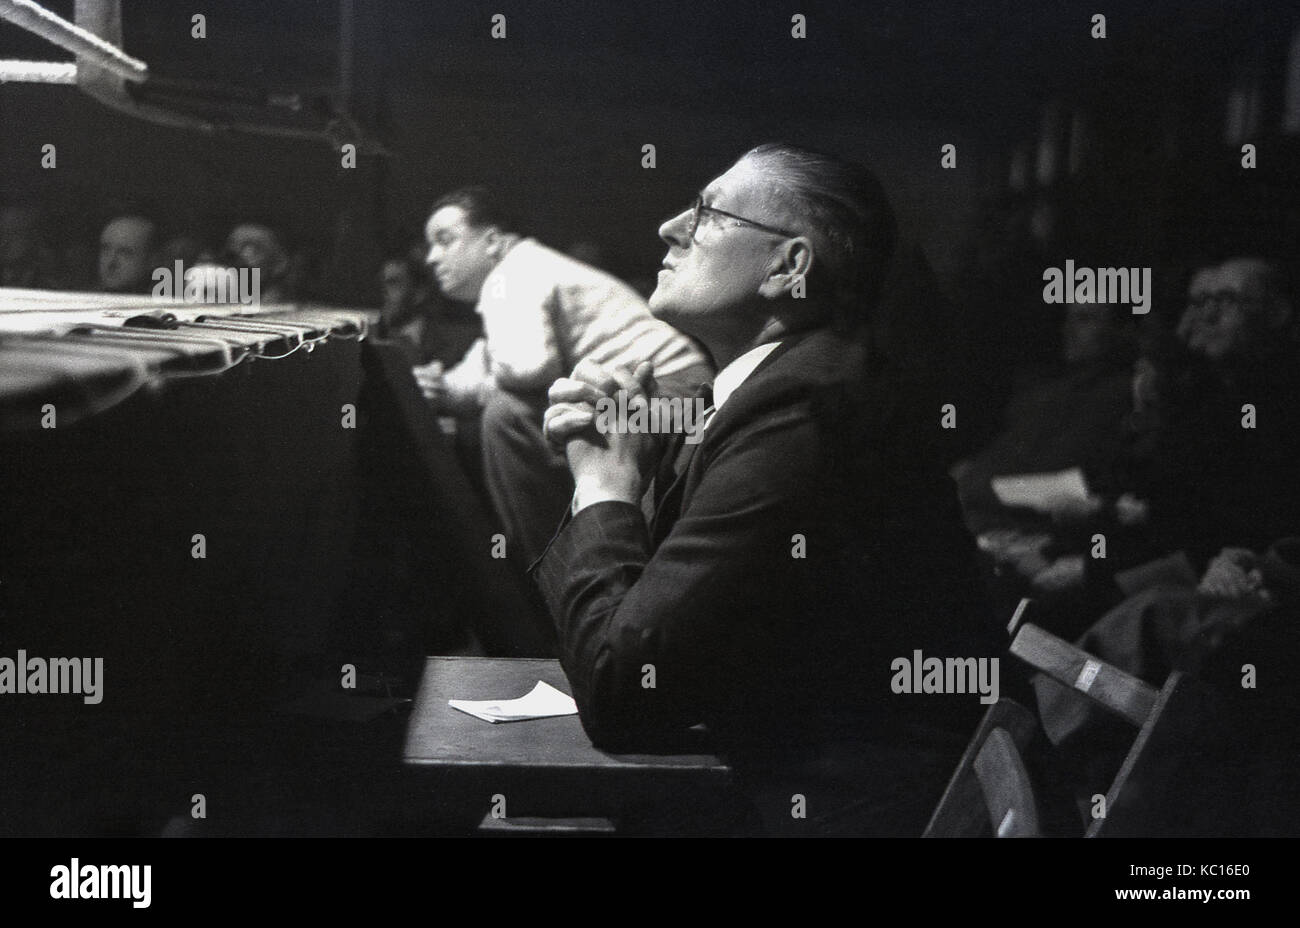 1960s, historical, male judge sits ringside watching the action at a boxing match, England, UK. - Stock Image